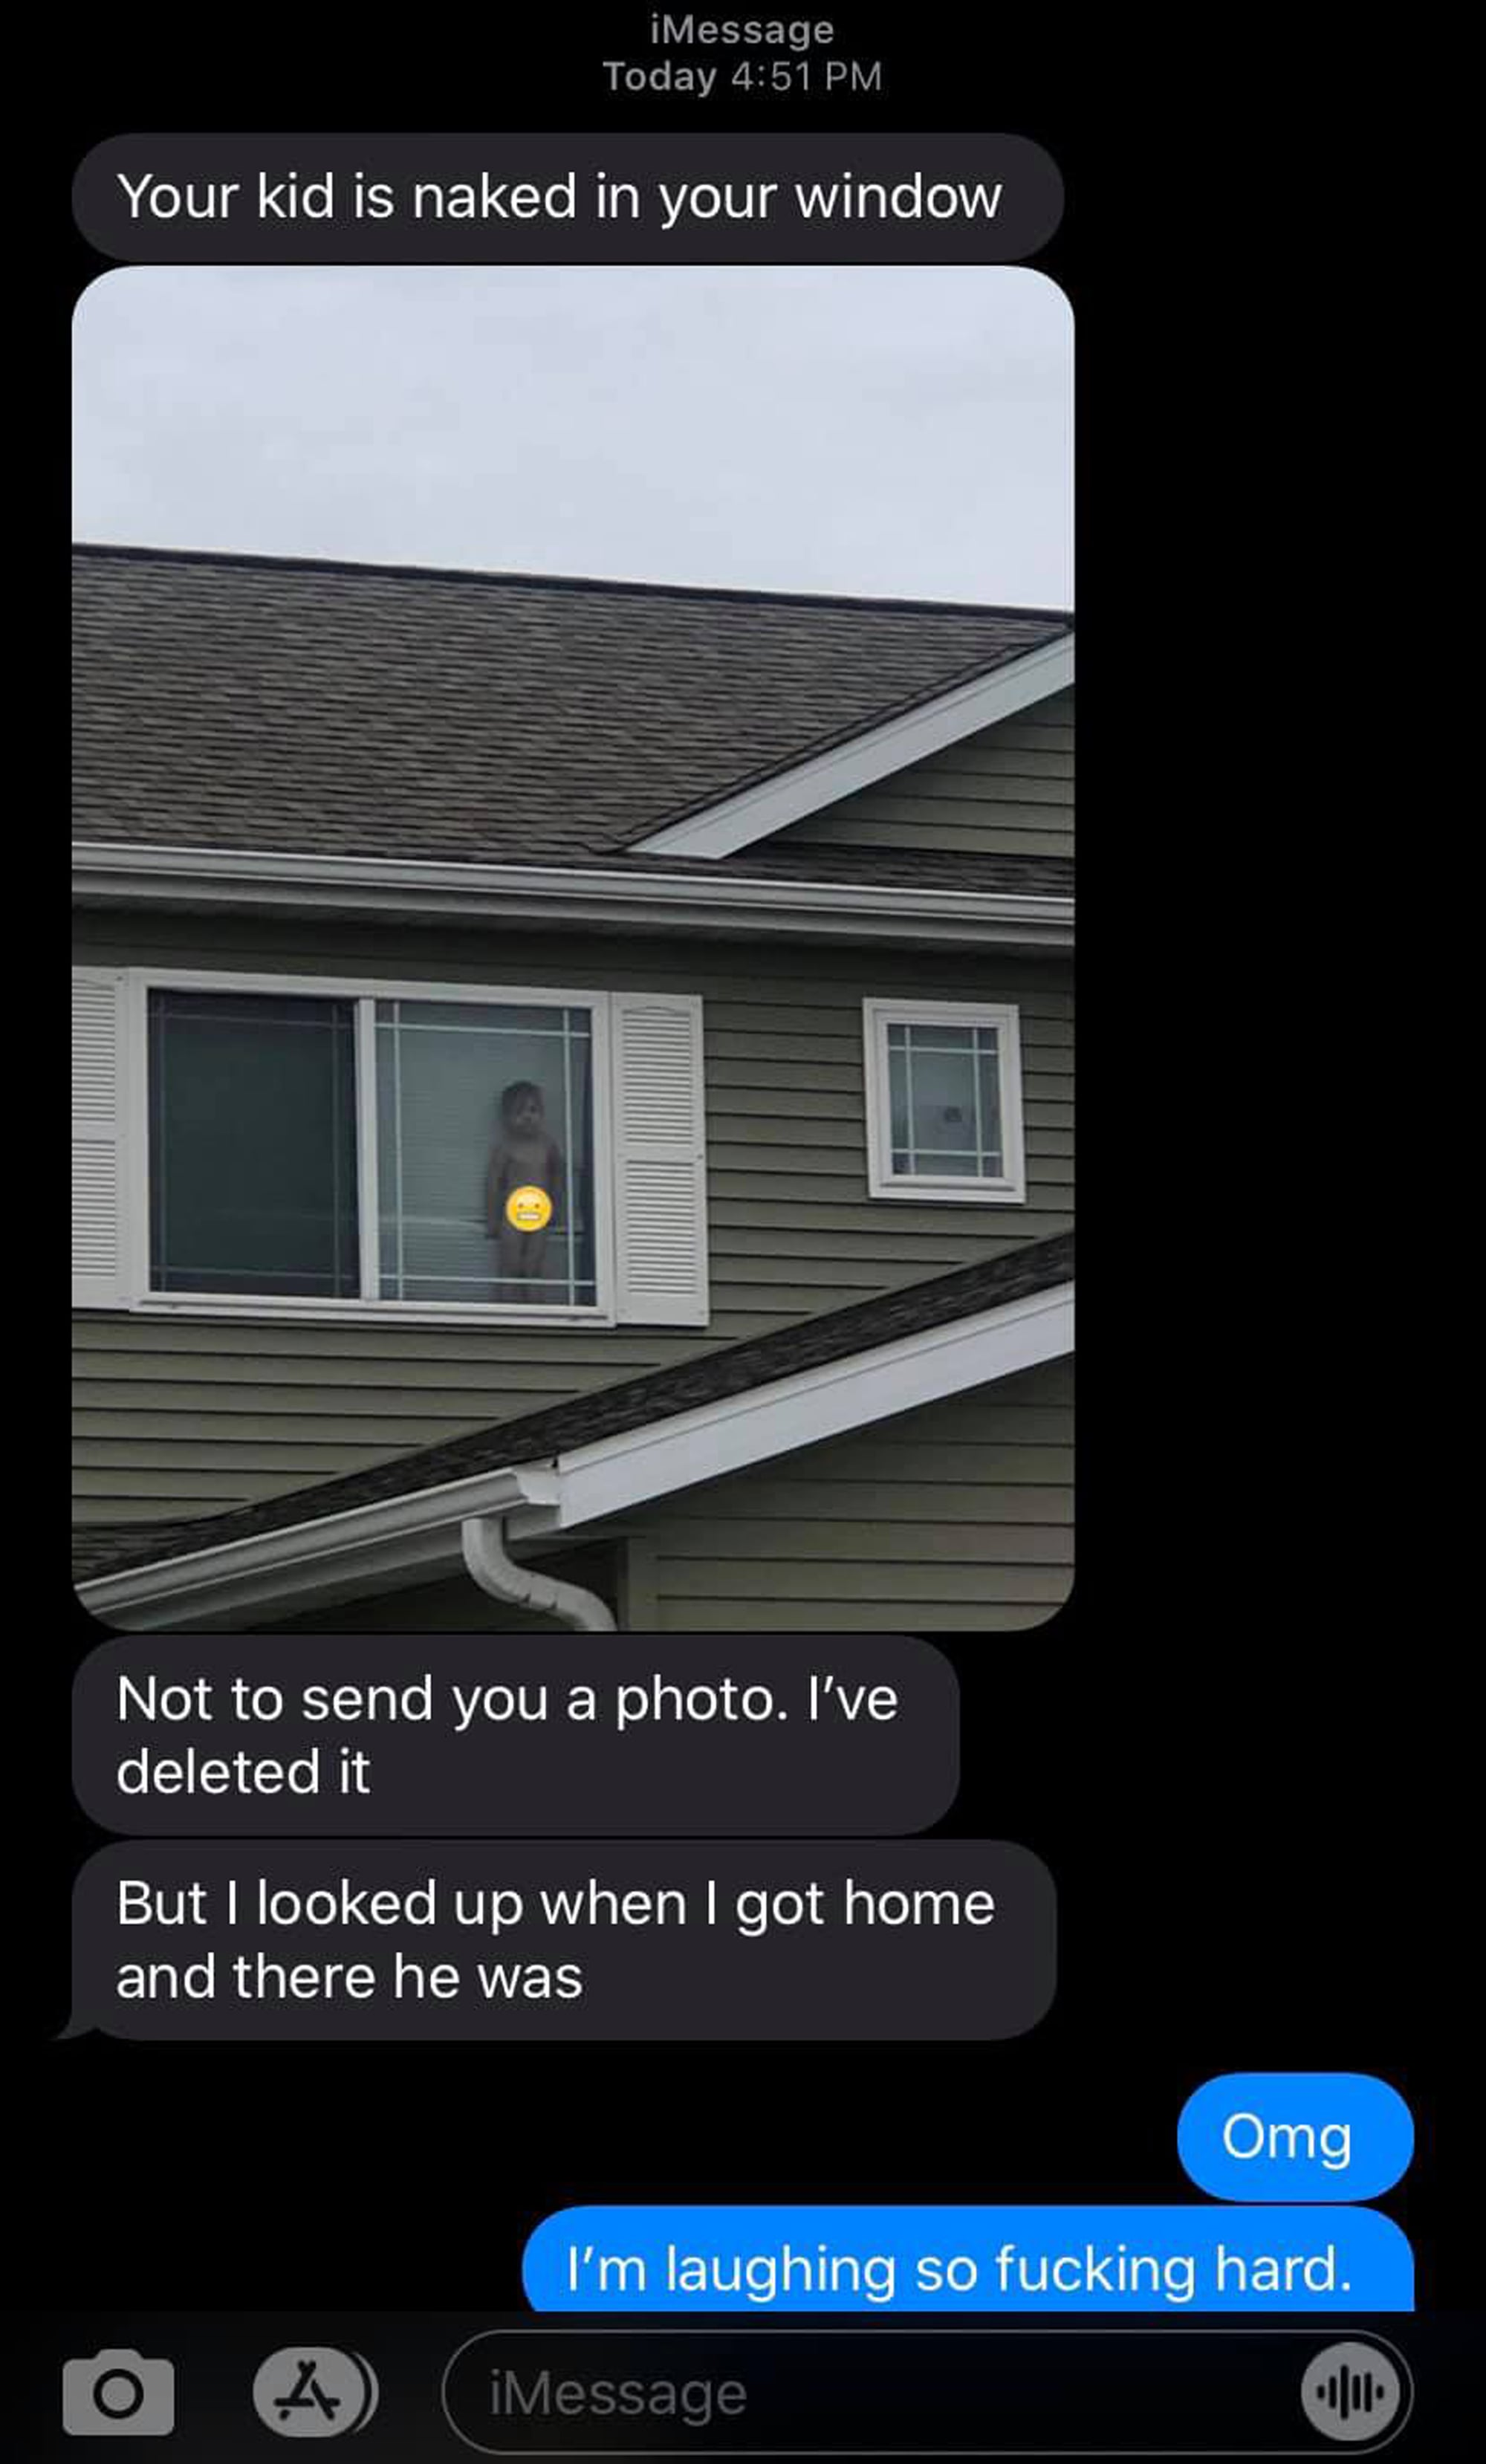 """Mom Thought She Was Doing Great, Then Got a Text From Her Neighbor: """"Your Kid Is Naked in Your Window"""""""